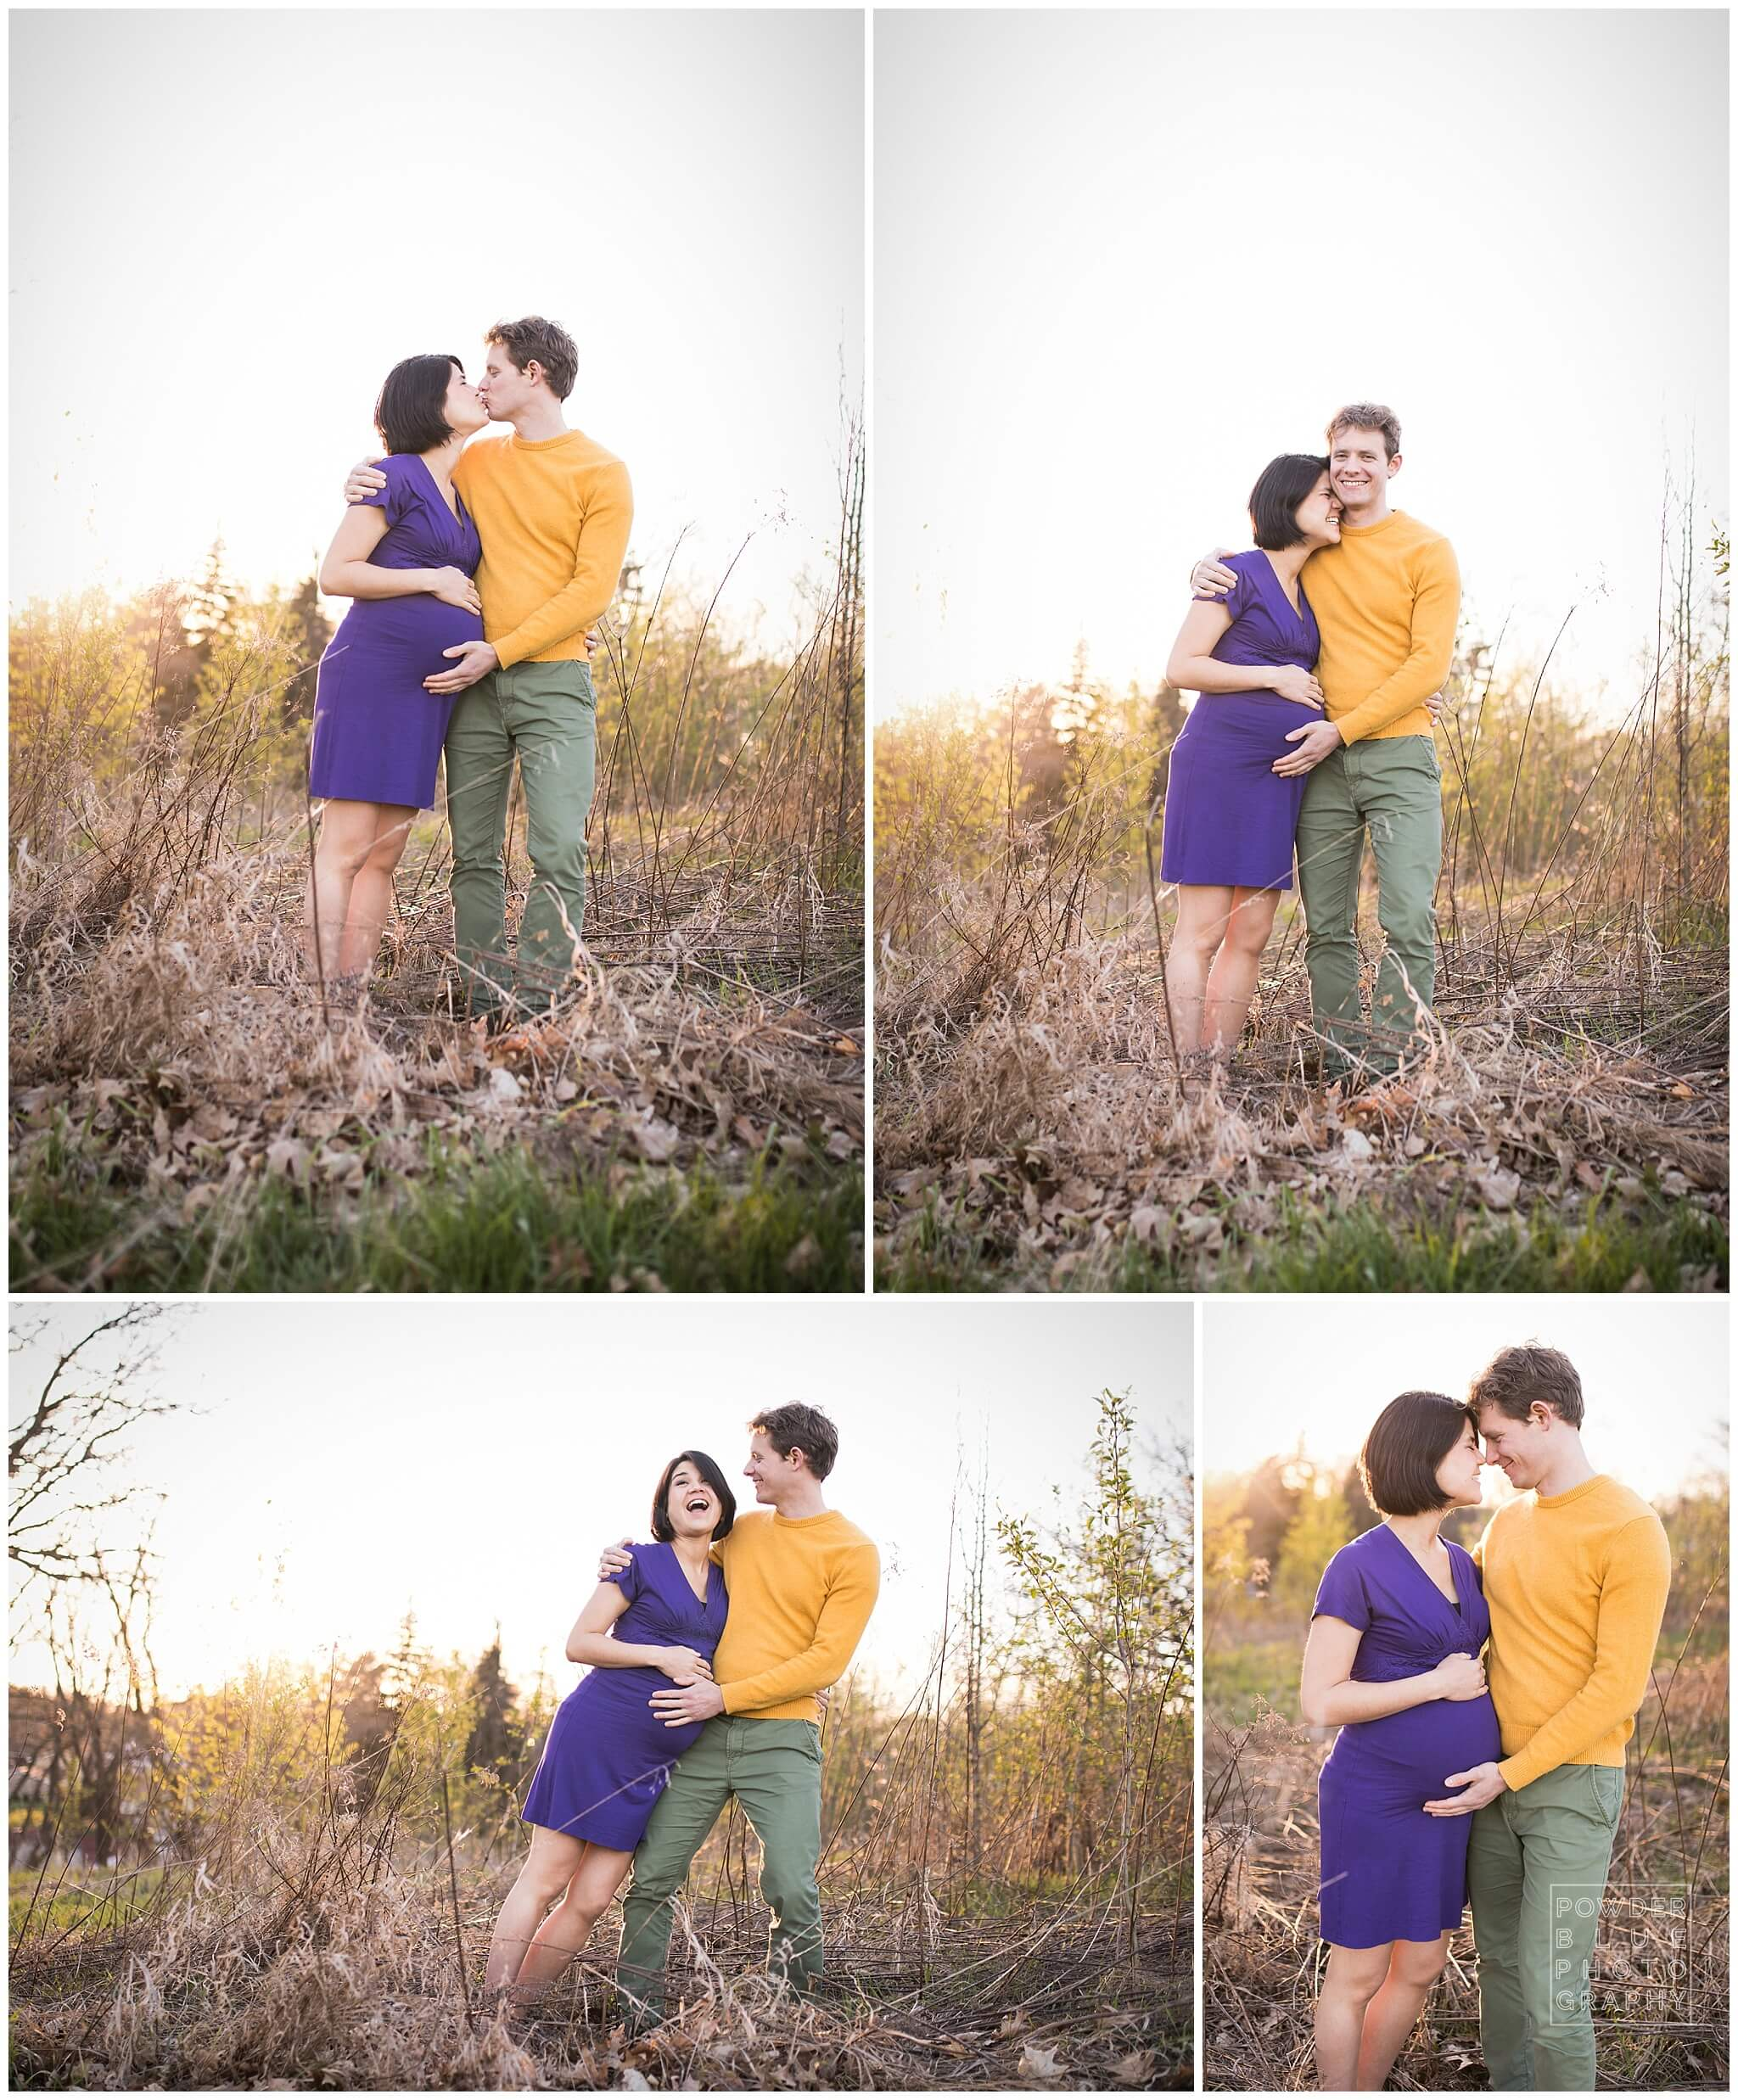 fun creative maternity portrait session images